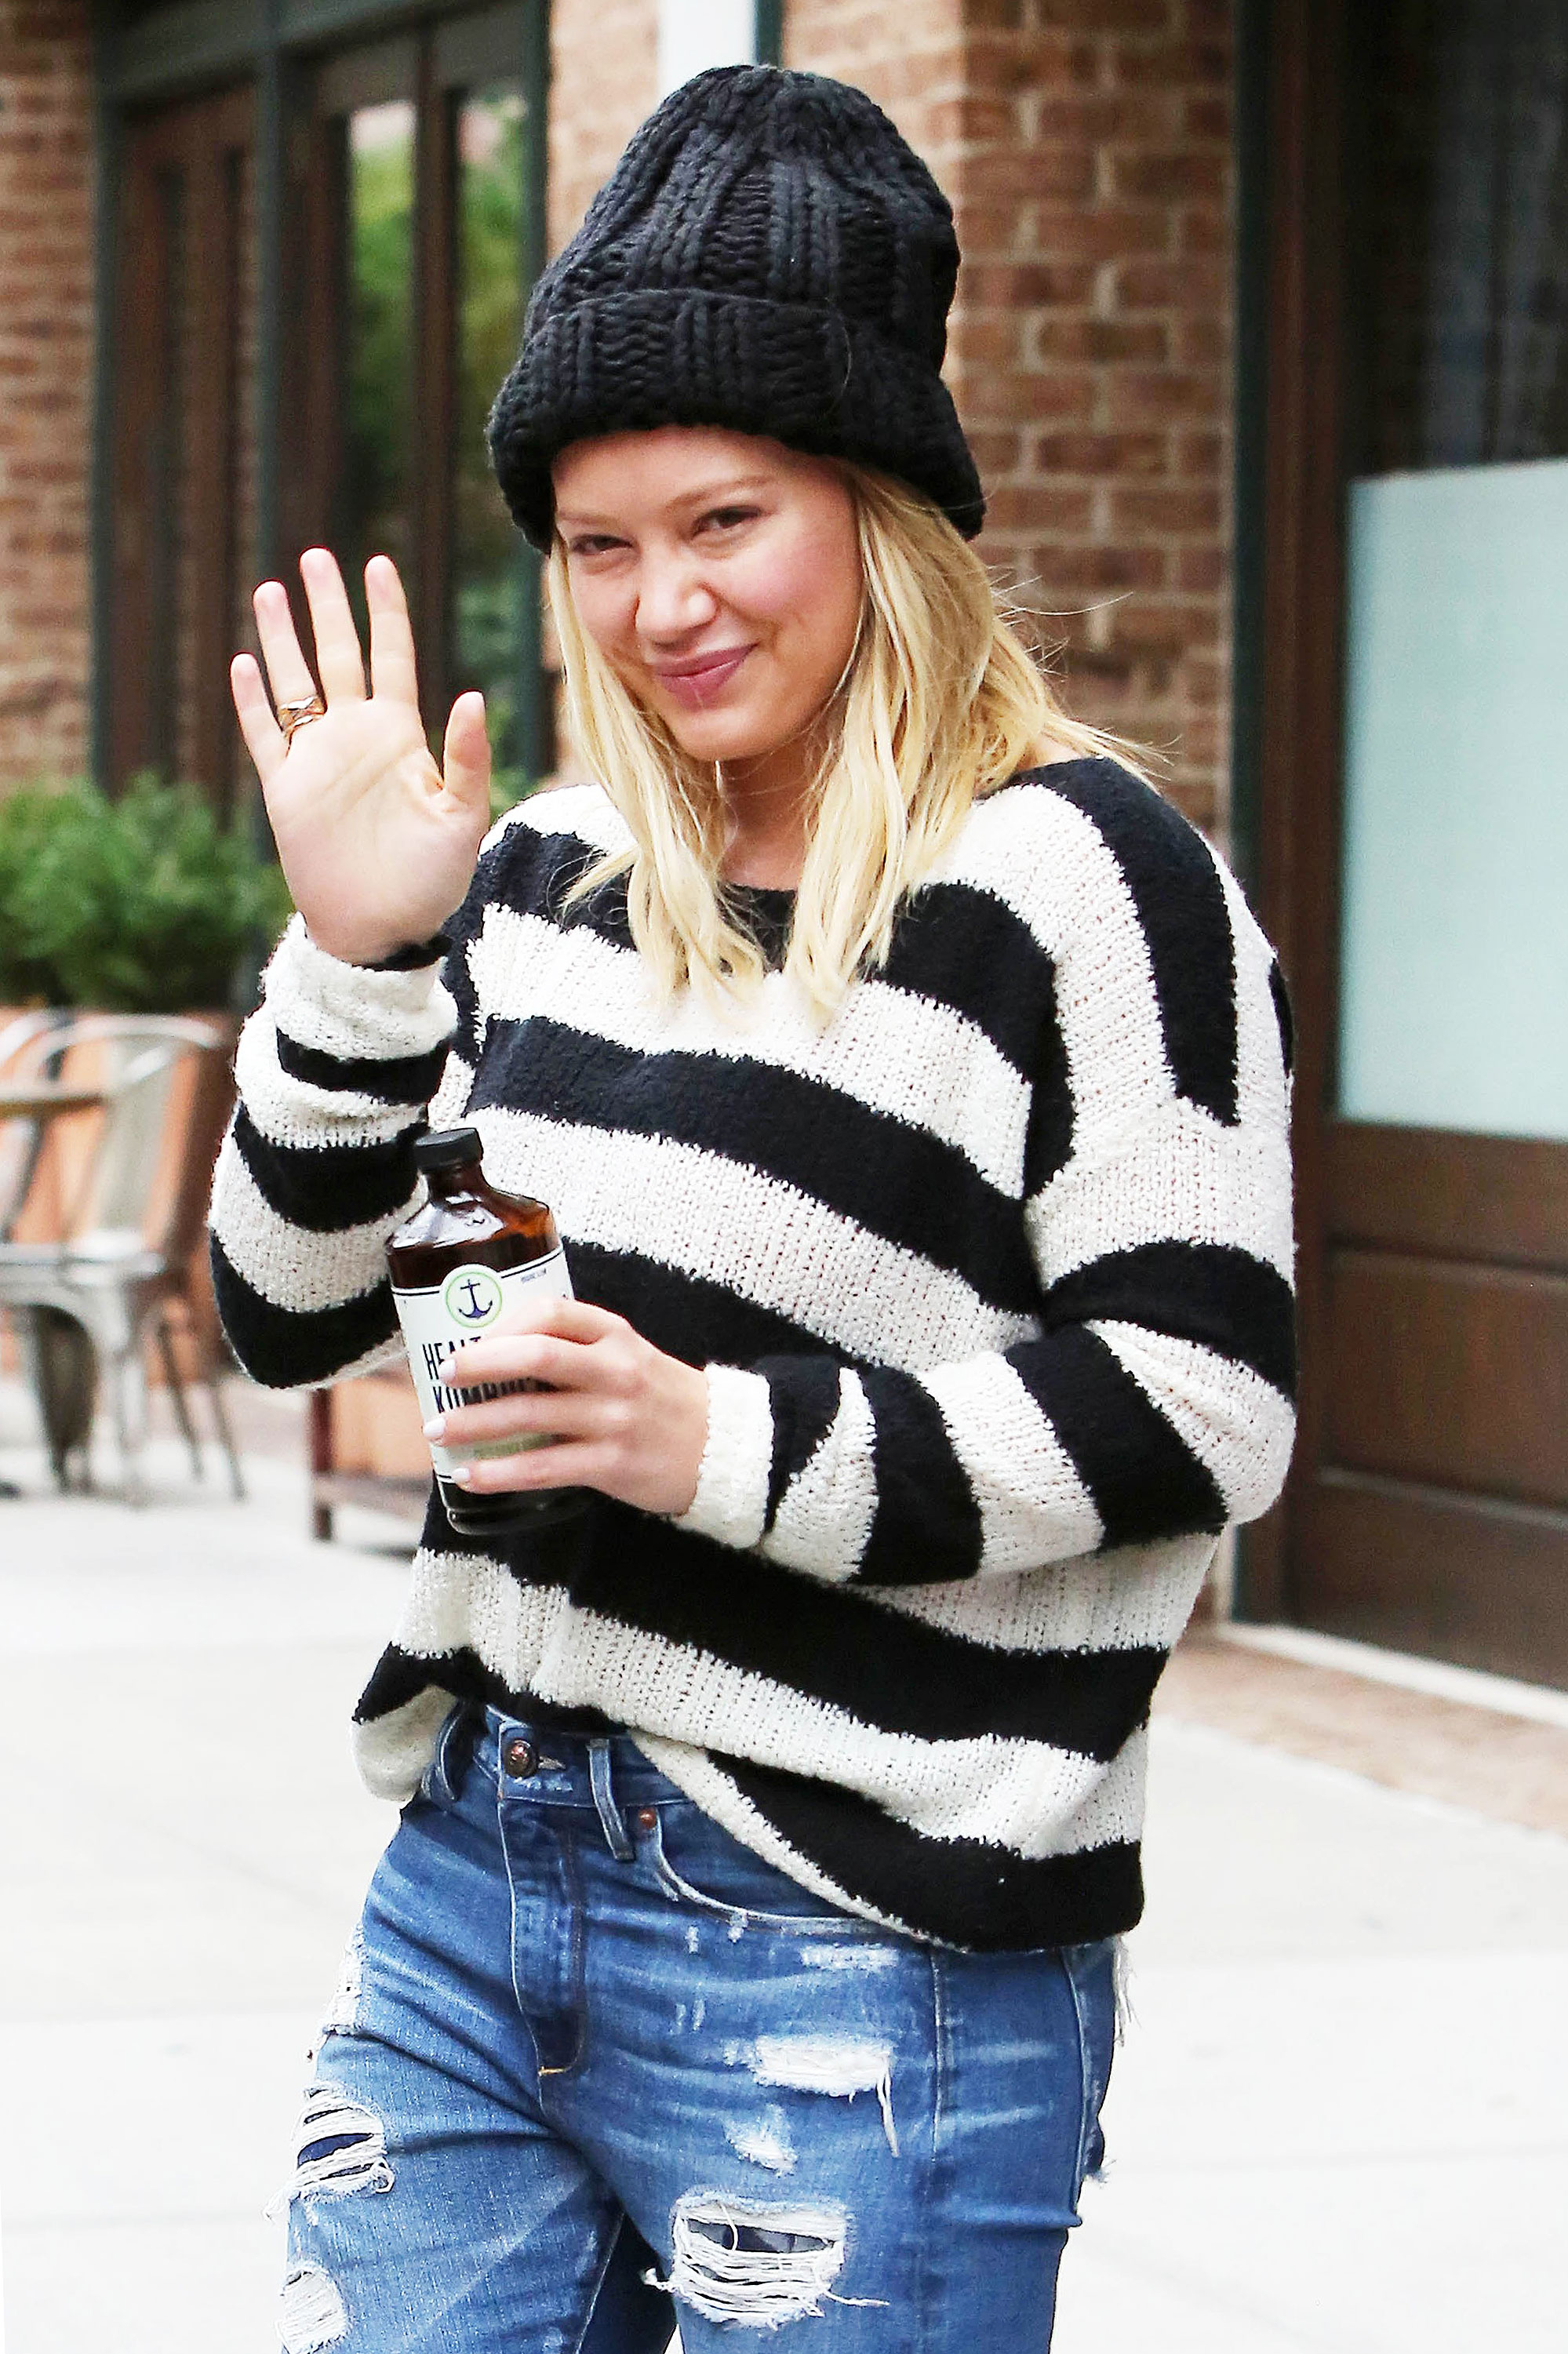 555077700e1 Hilary Duff Flawless Without Makeup in NYC